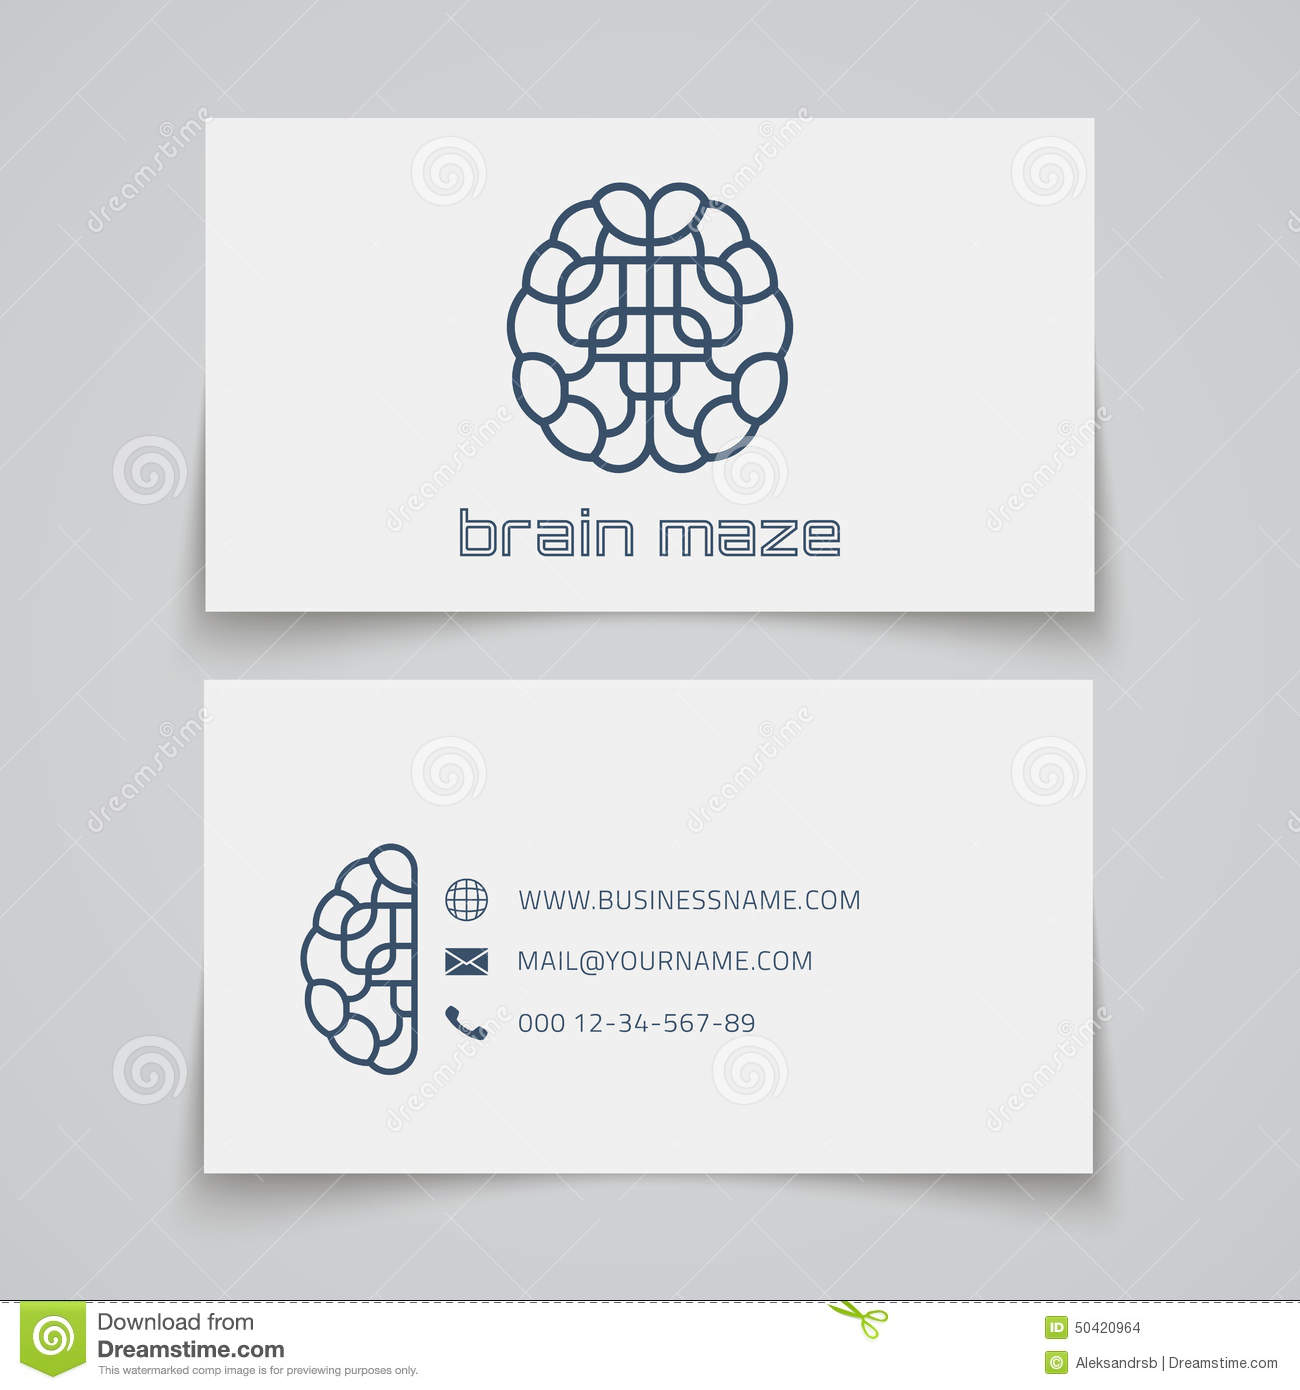 Business card template brain maze logo stock vector illustration business card template brain maze logo stock vector illustration of background letterhead 50420964 reheart